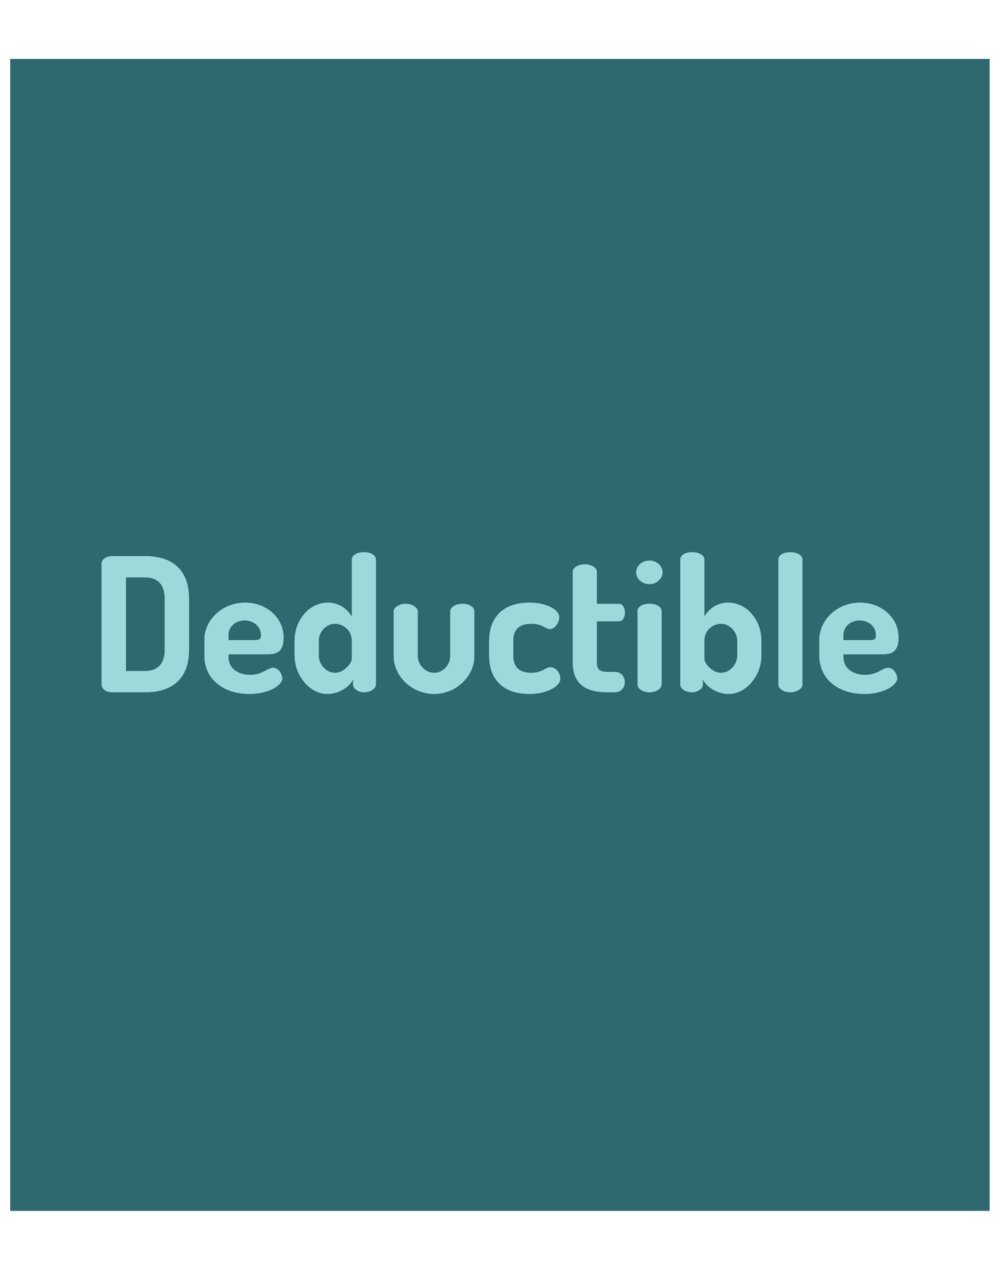 DEDUCTIBLE: Each year, before your health plan pays for any health services you get, you have to pay for those services until you reach a certain dollar amount. This amount is called your deductible.